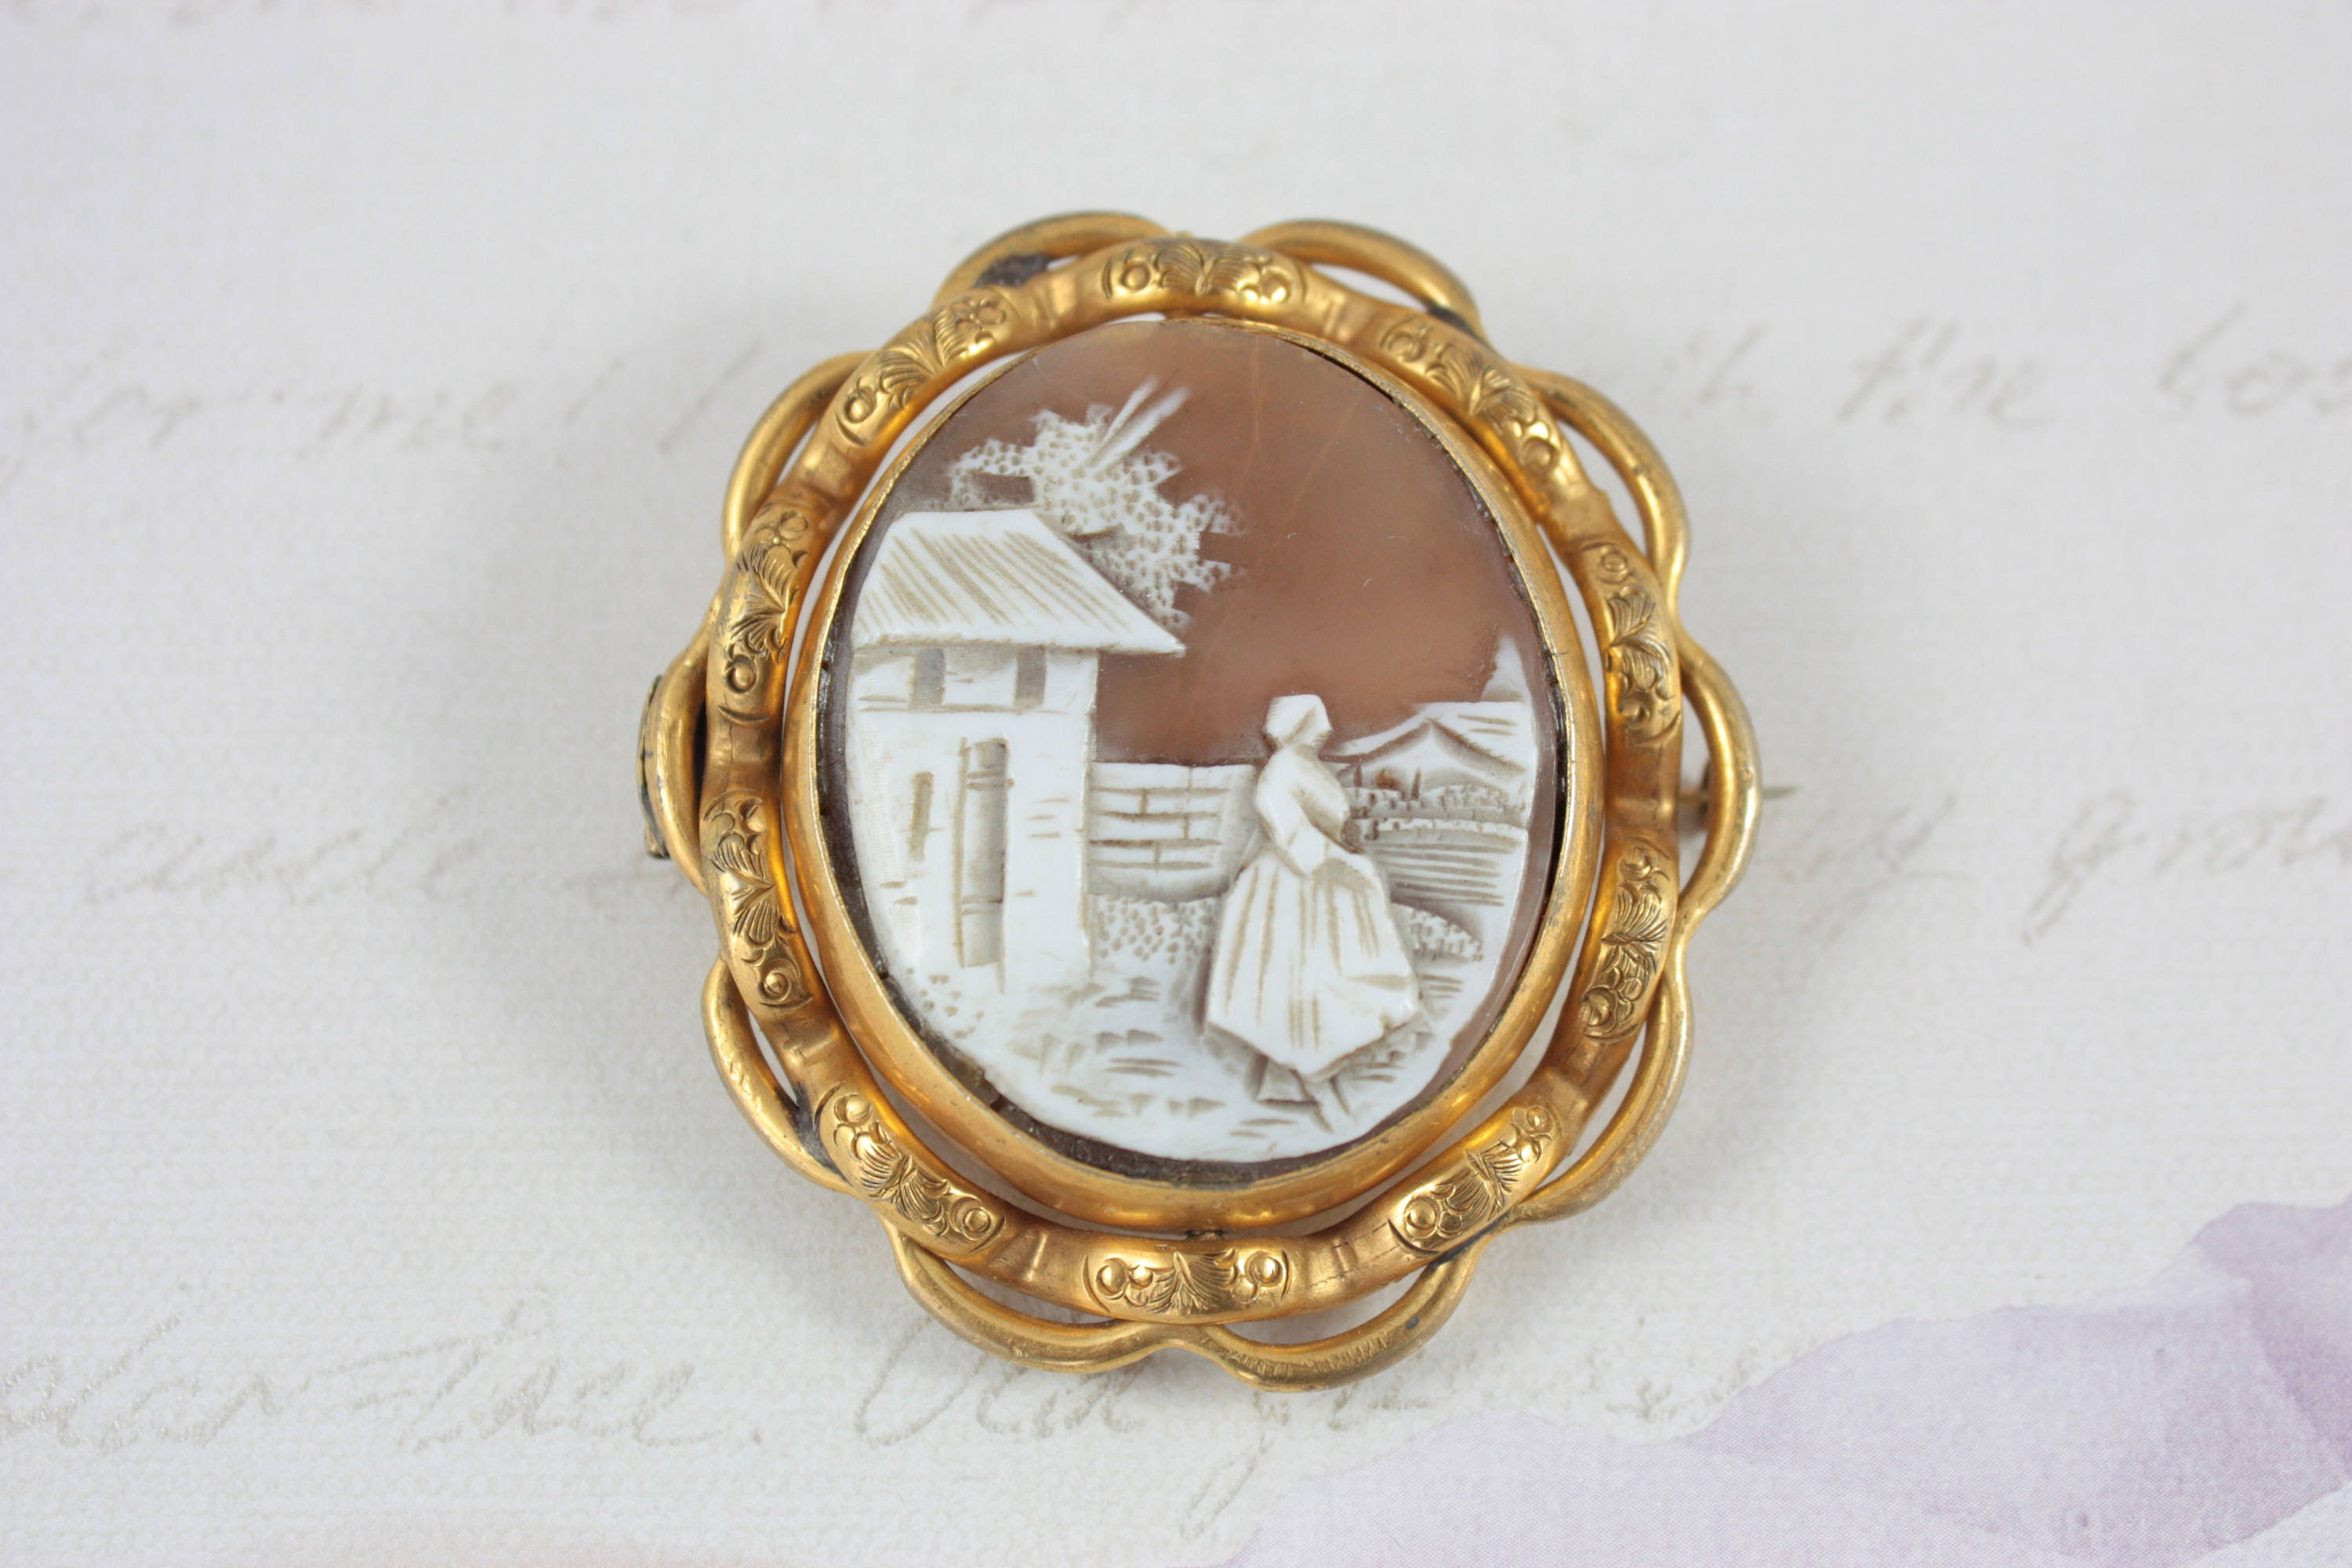 Large Victorian Swivel Cameo Brooch Antique Shell Cameo Brooch Hair Mourning Brooch Gold Plated Cameo Brooch